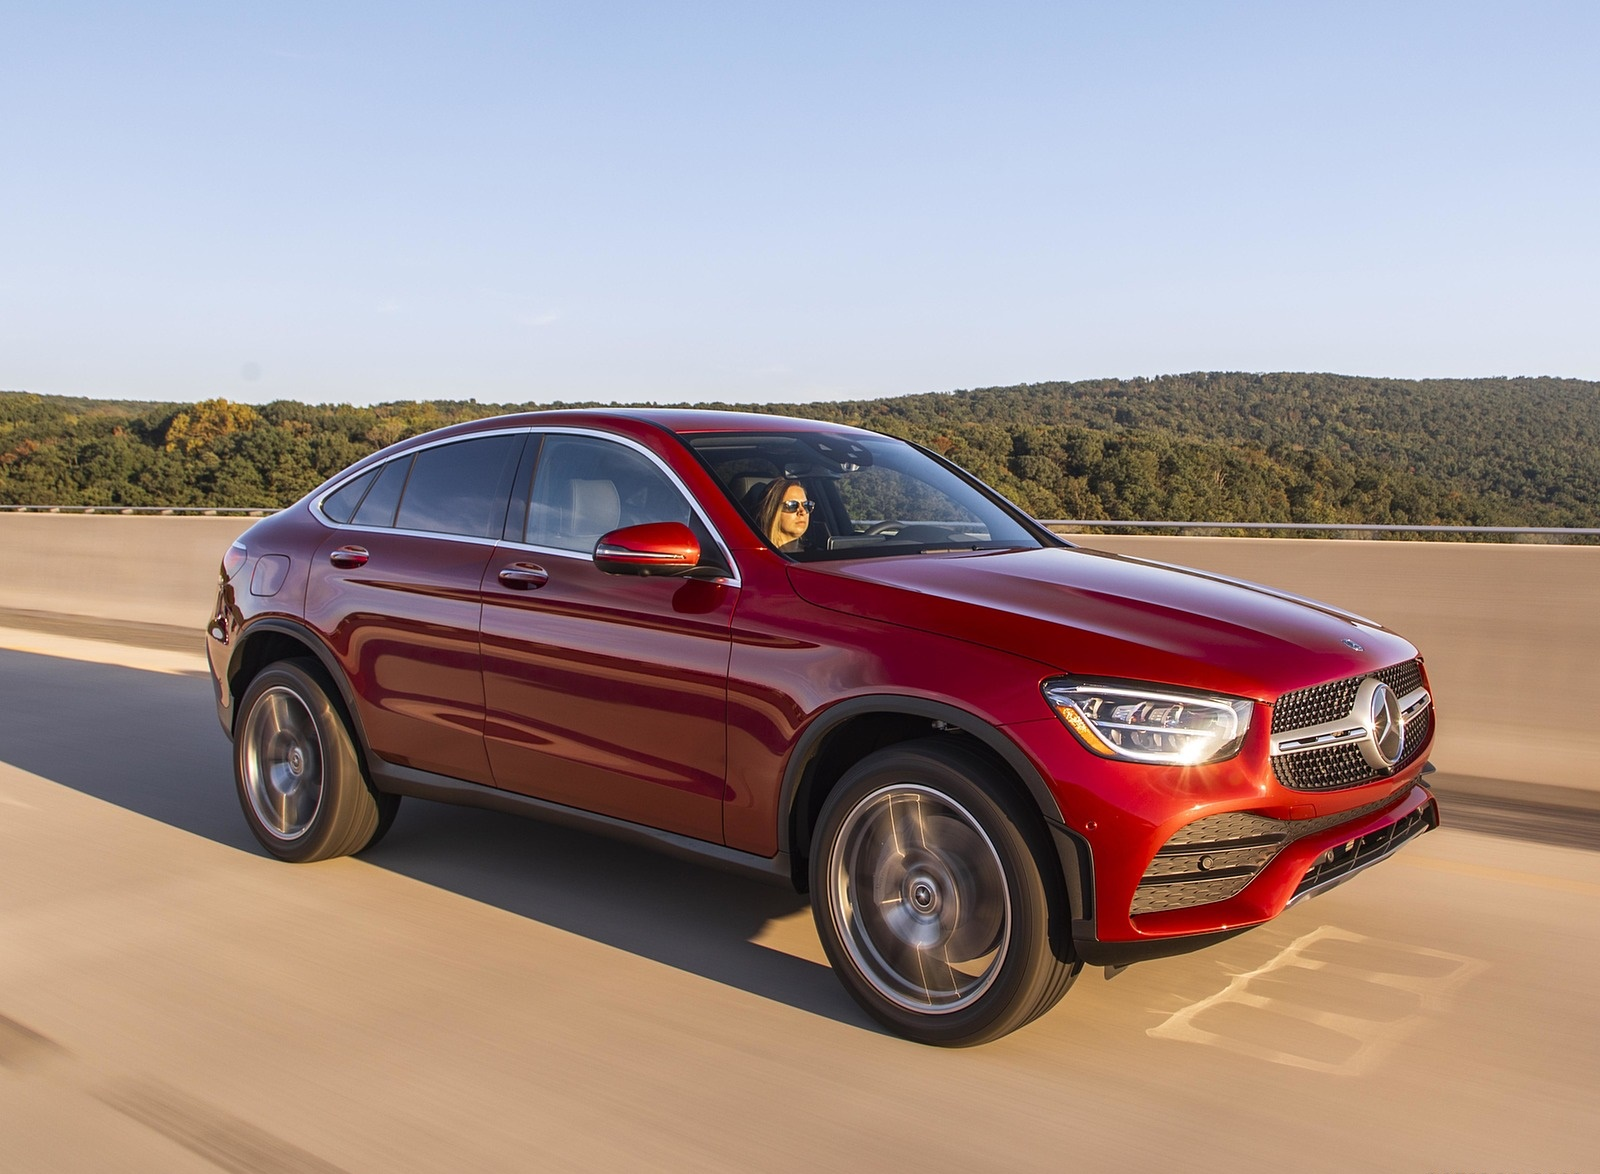 2020 Mercedes-Benz GLC 300 Coupe (US-Spec) Front Three-Quarter Wallpapers (5)